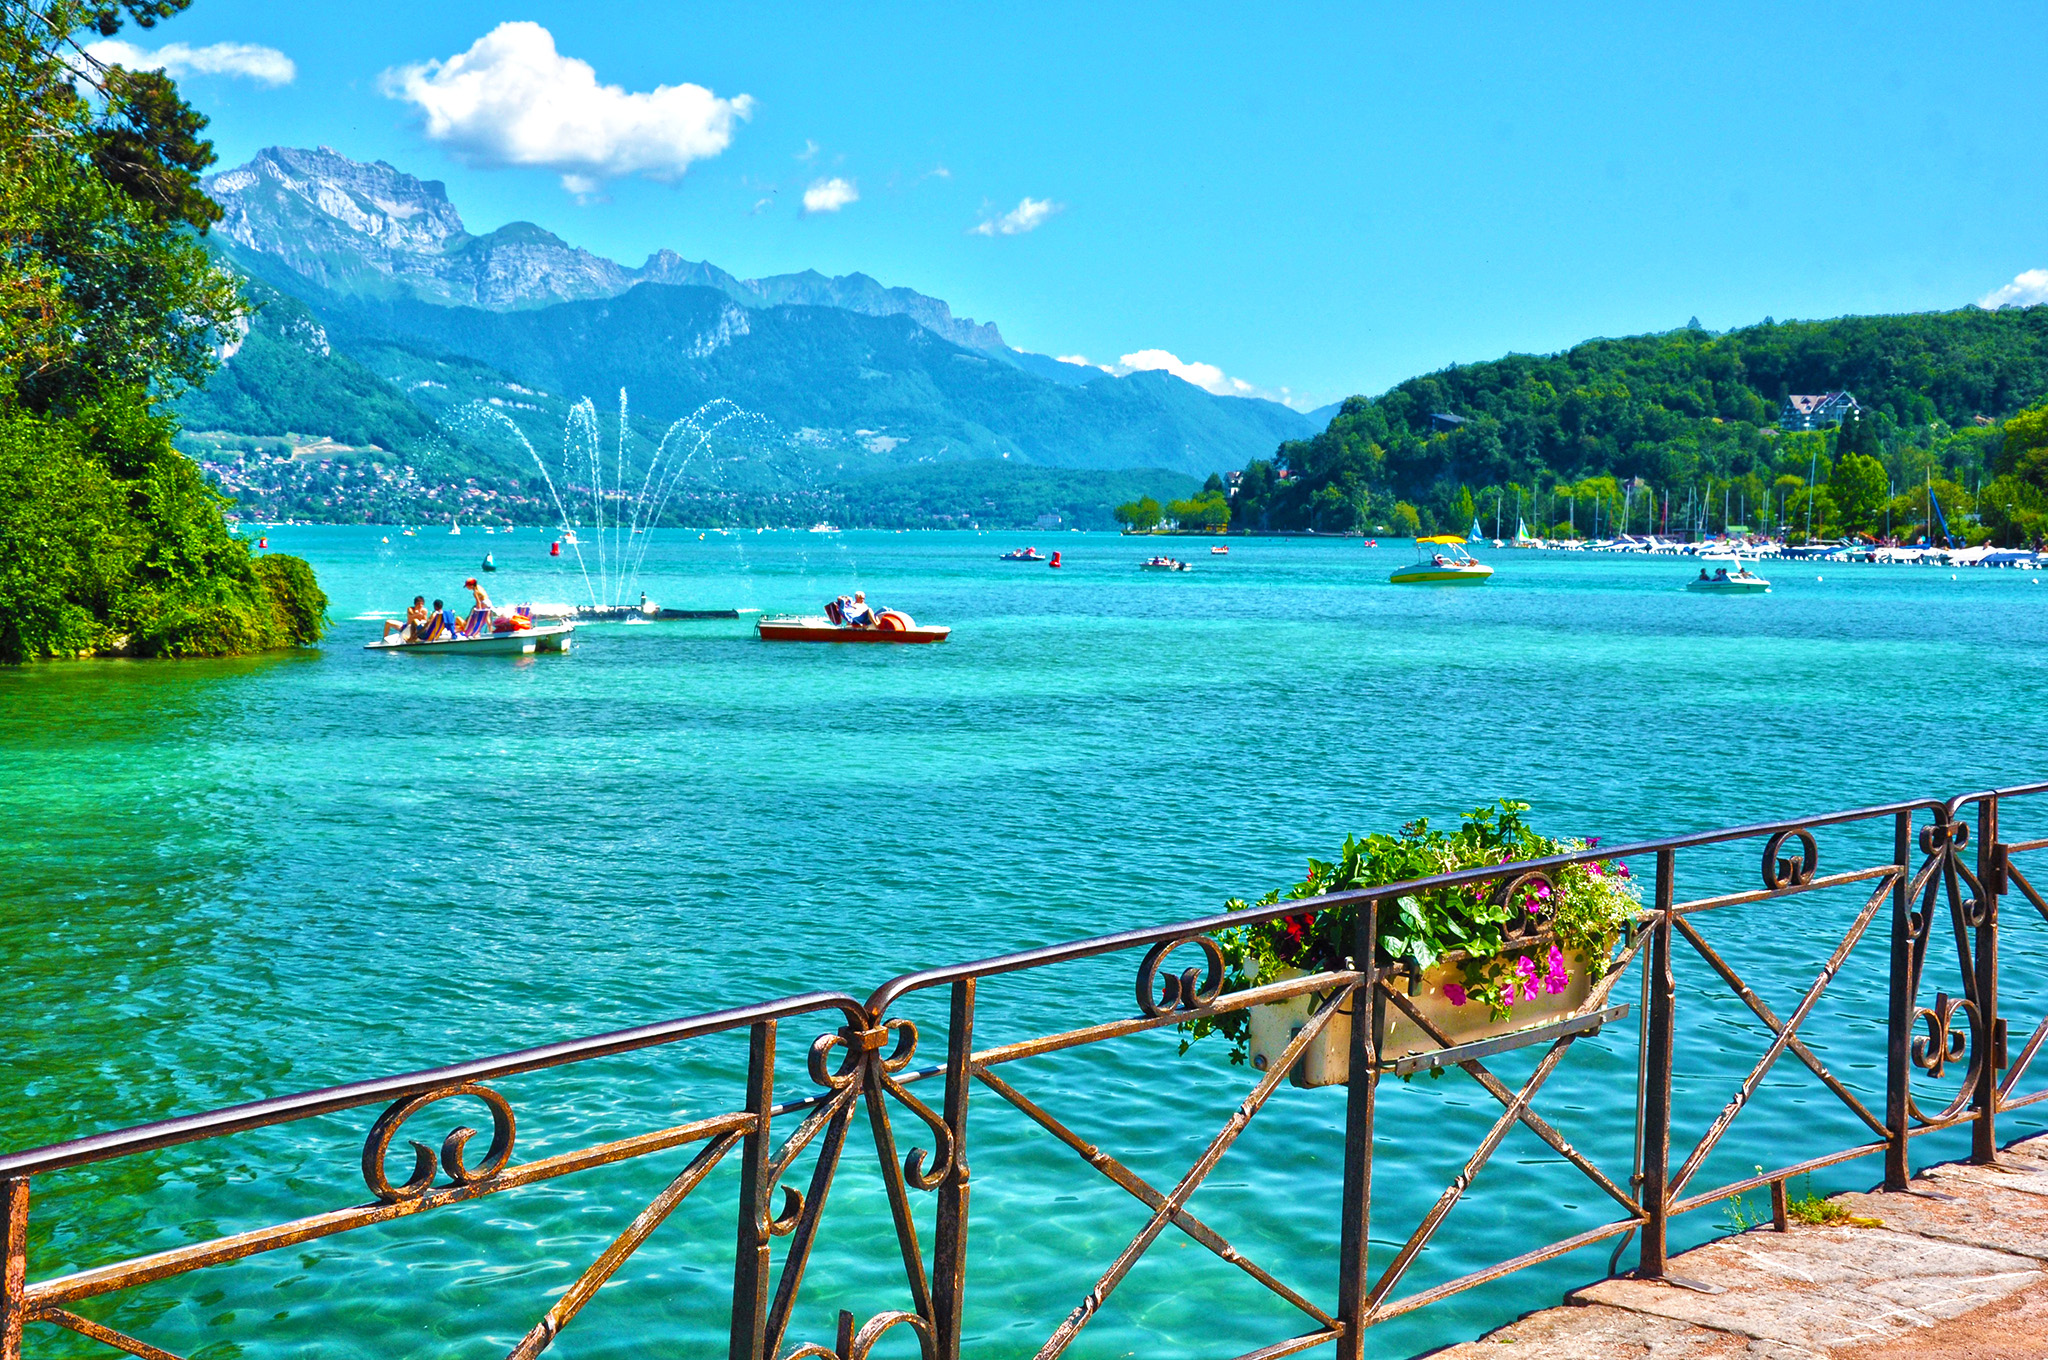 kt_2020_370_Keytours_excursions_Swisstours_annecy_lac5_2048_10